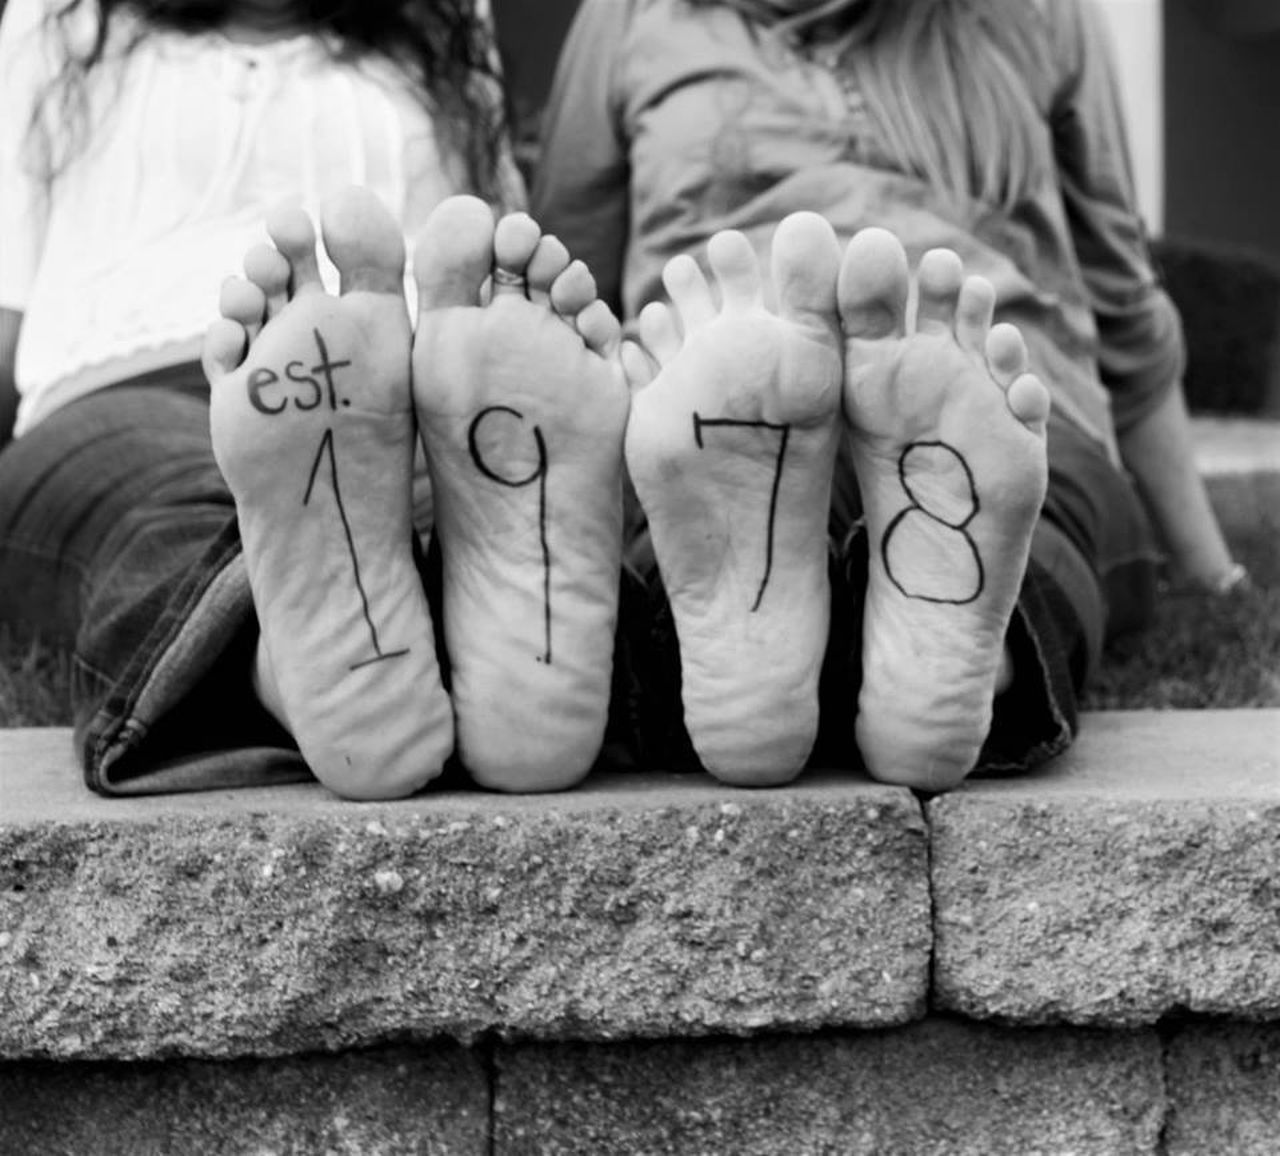 human body part, human hand, real people, close-up, togetherness, two people, outdoors, day, childhood, adult, people, adults only